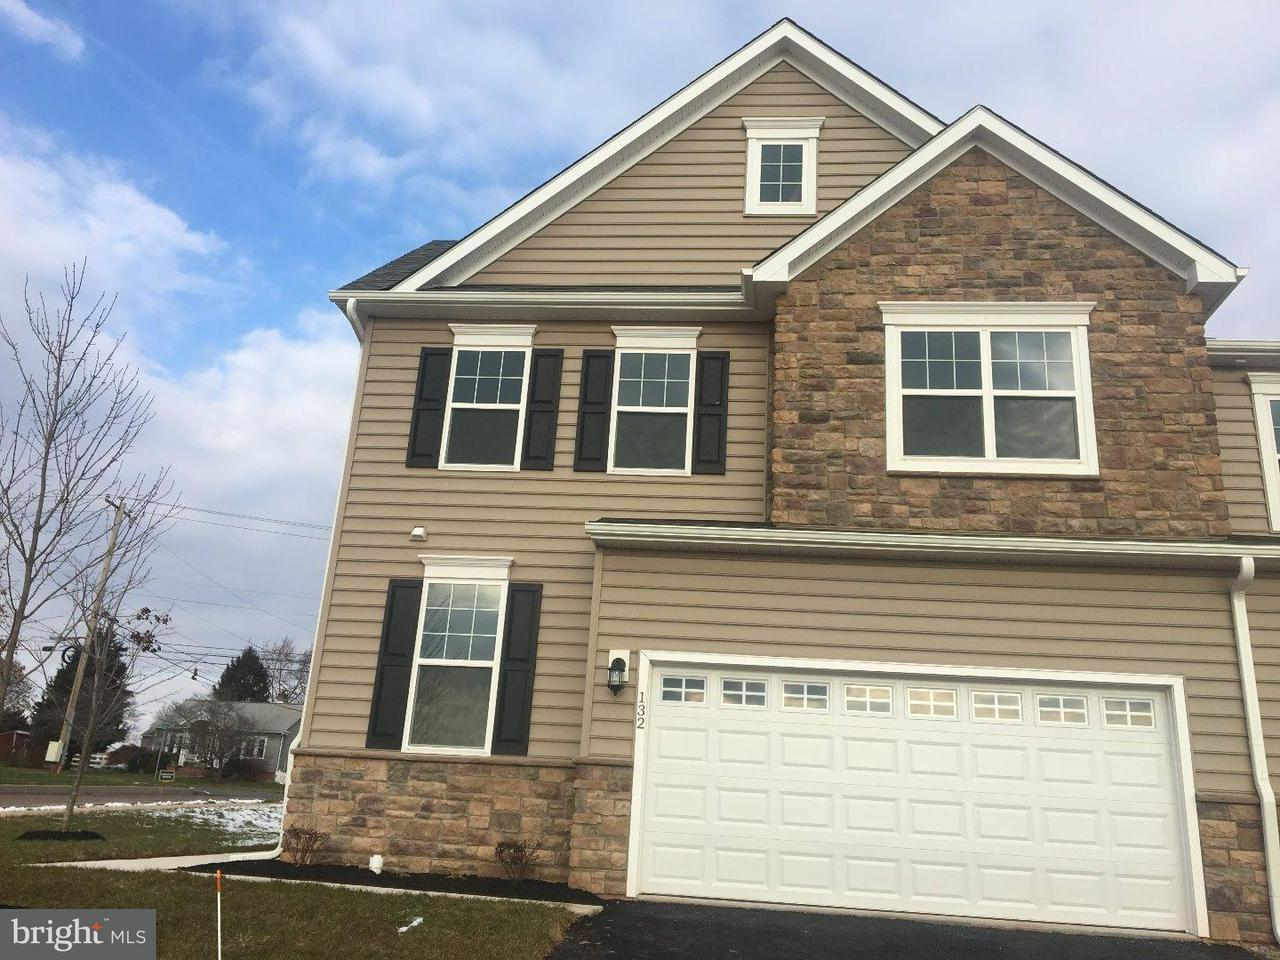 Townhouse for Rent at 132 AUBREY Lane Royersford, Pennsylvania 19426 United States